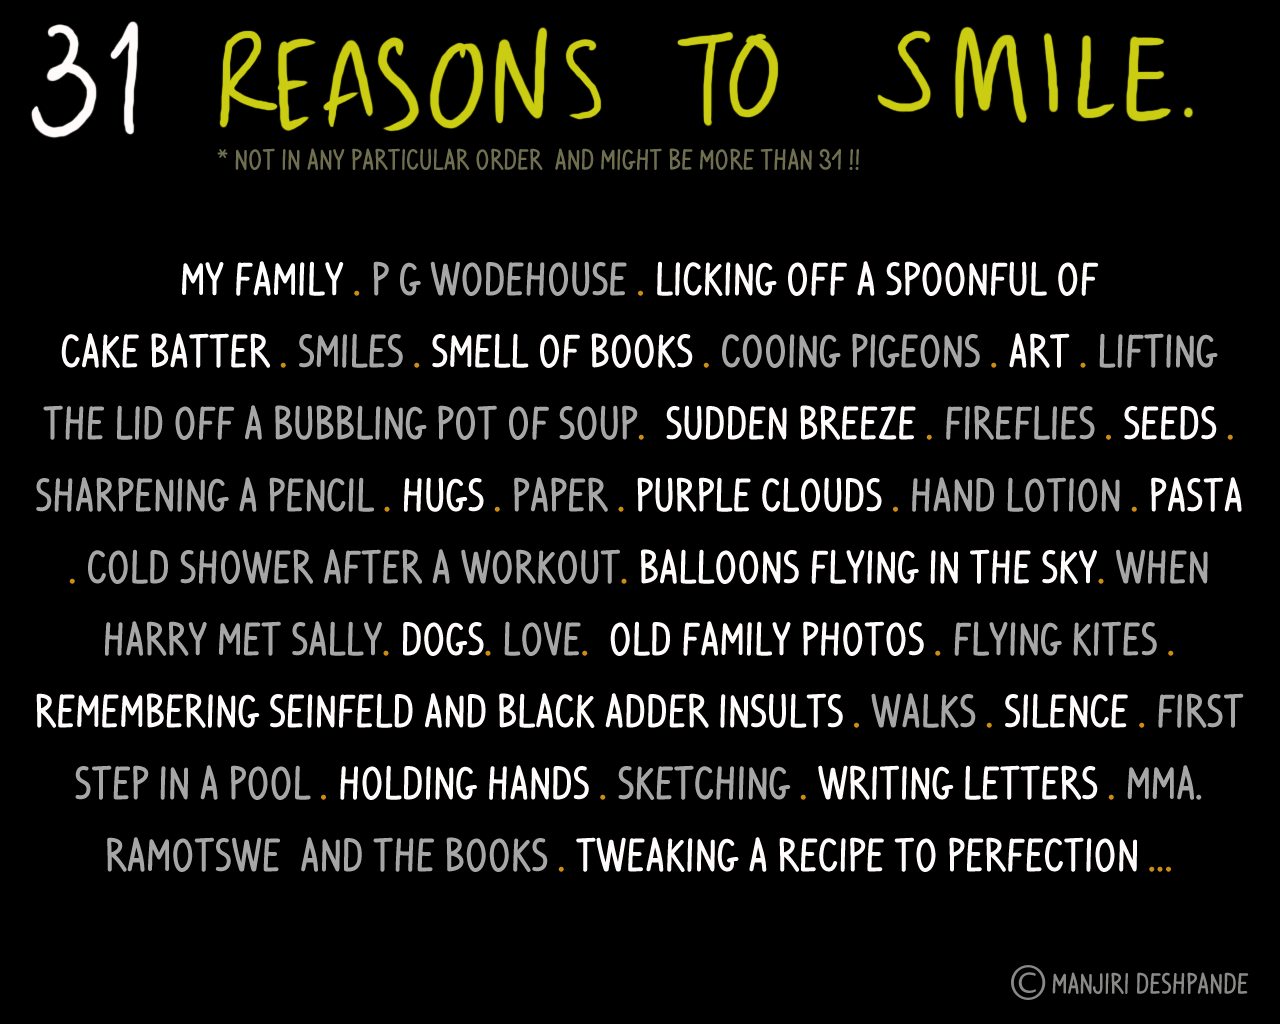 31 Reasons To Smile Visual Trademarks